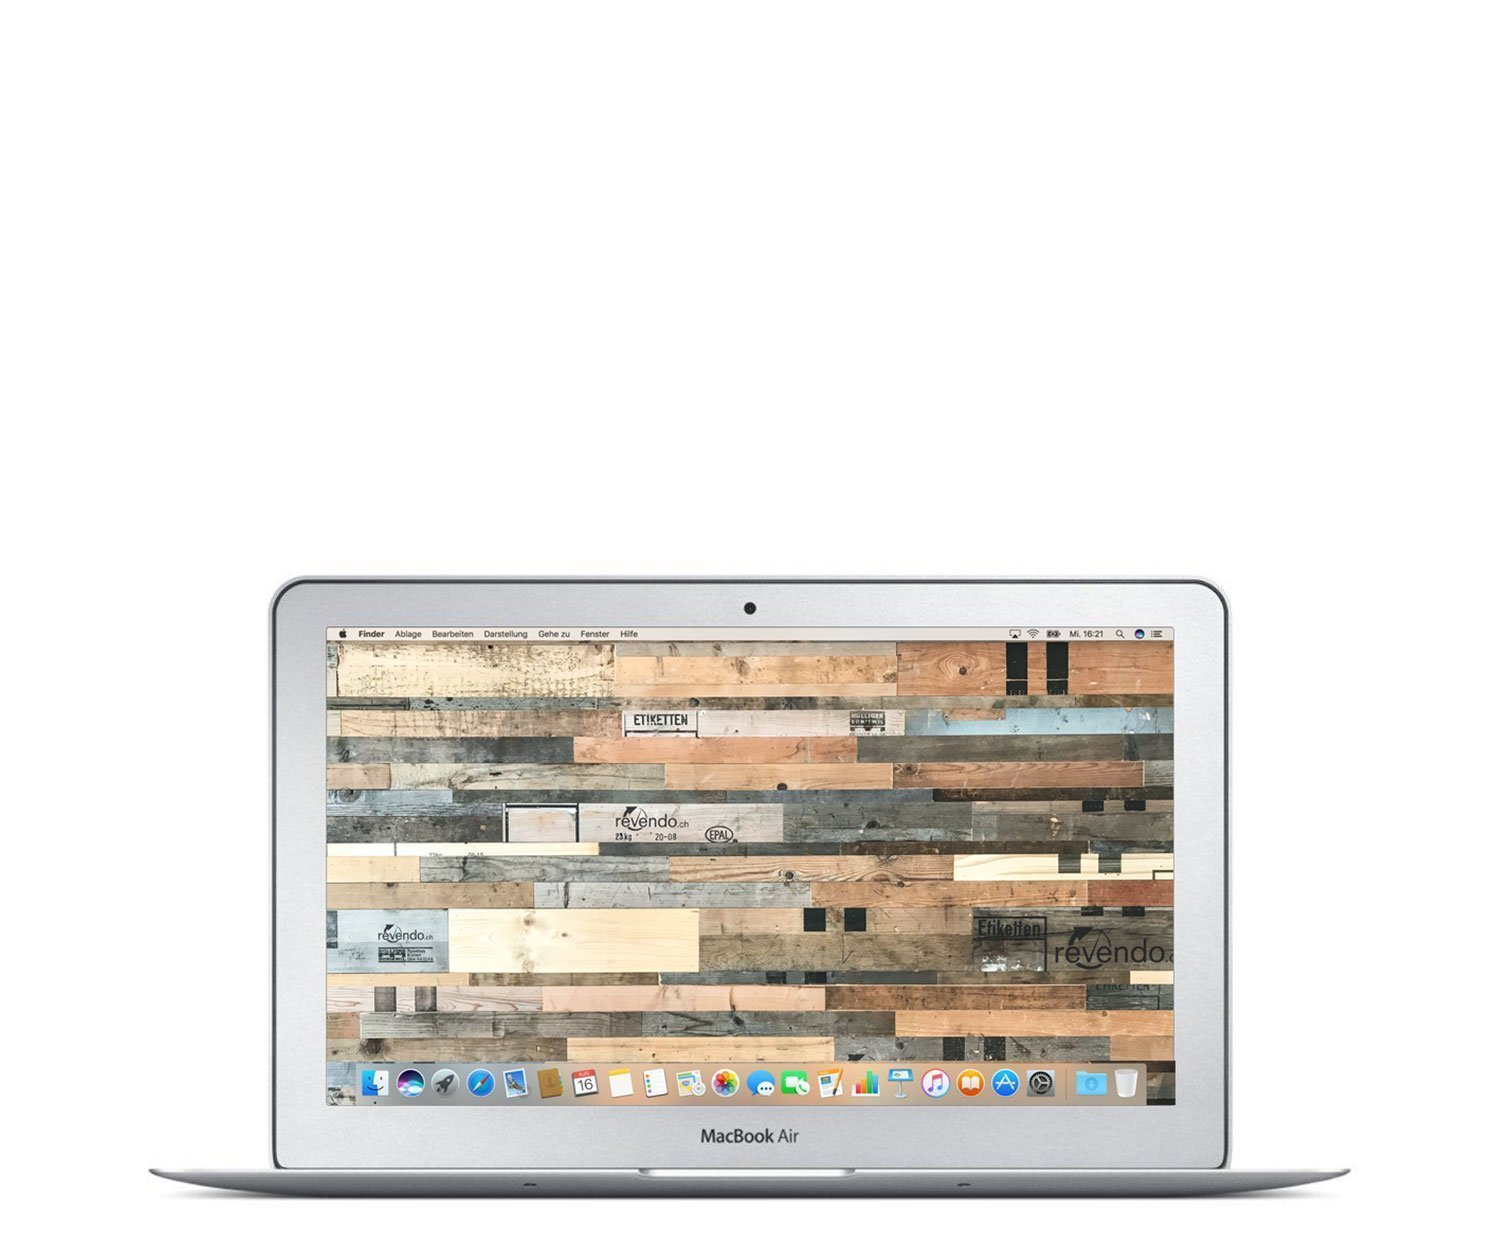 macbook air 11 1 7 ghz core i5 128 gb ssd. Black Bedroom Furniture Sets. Home Design Ideas